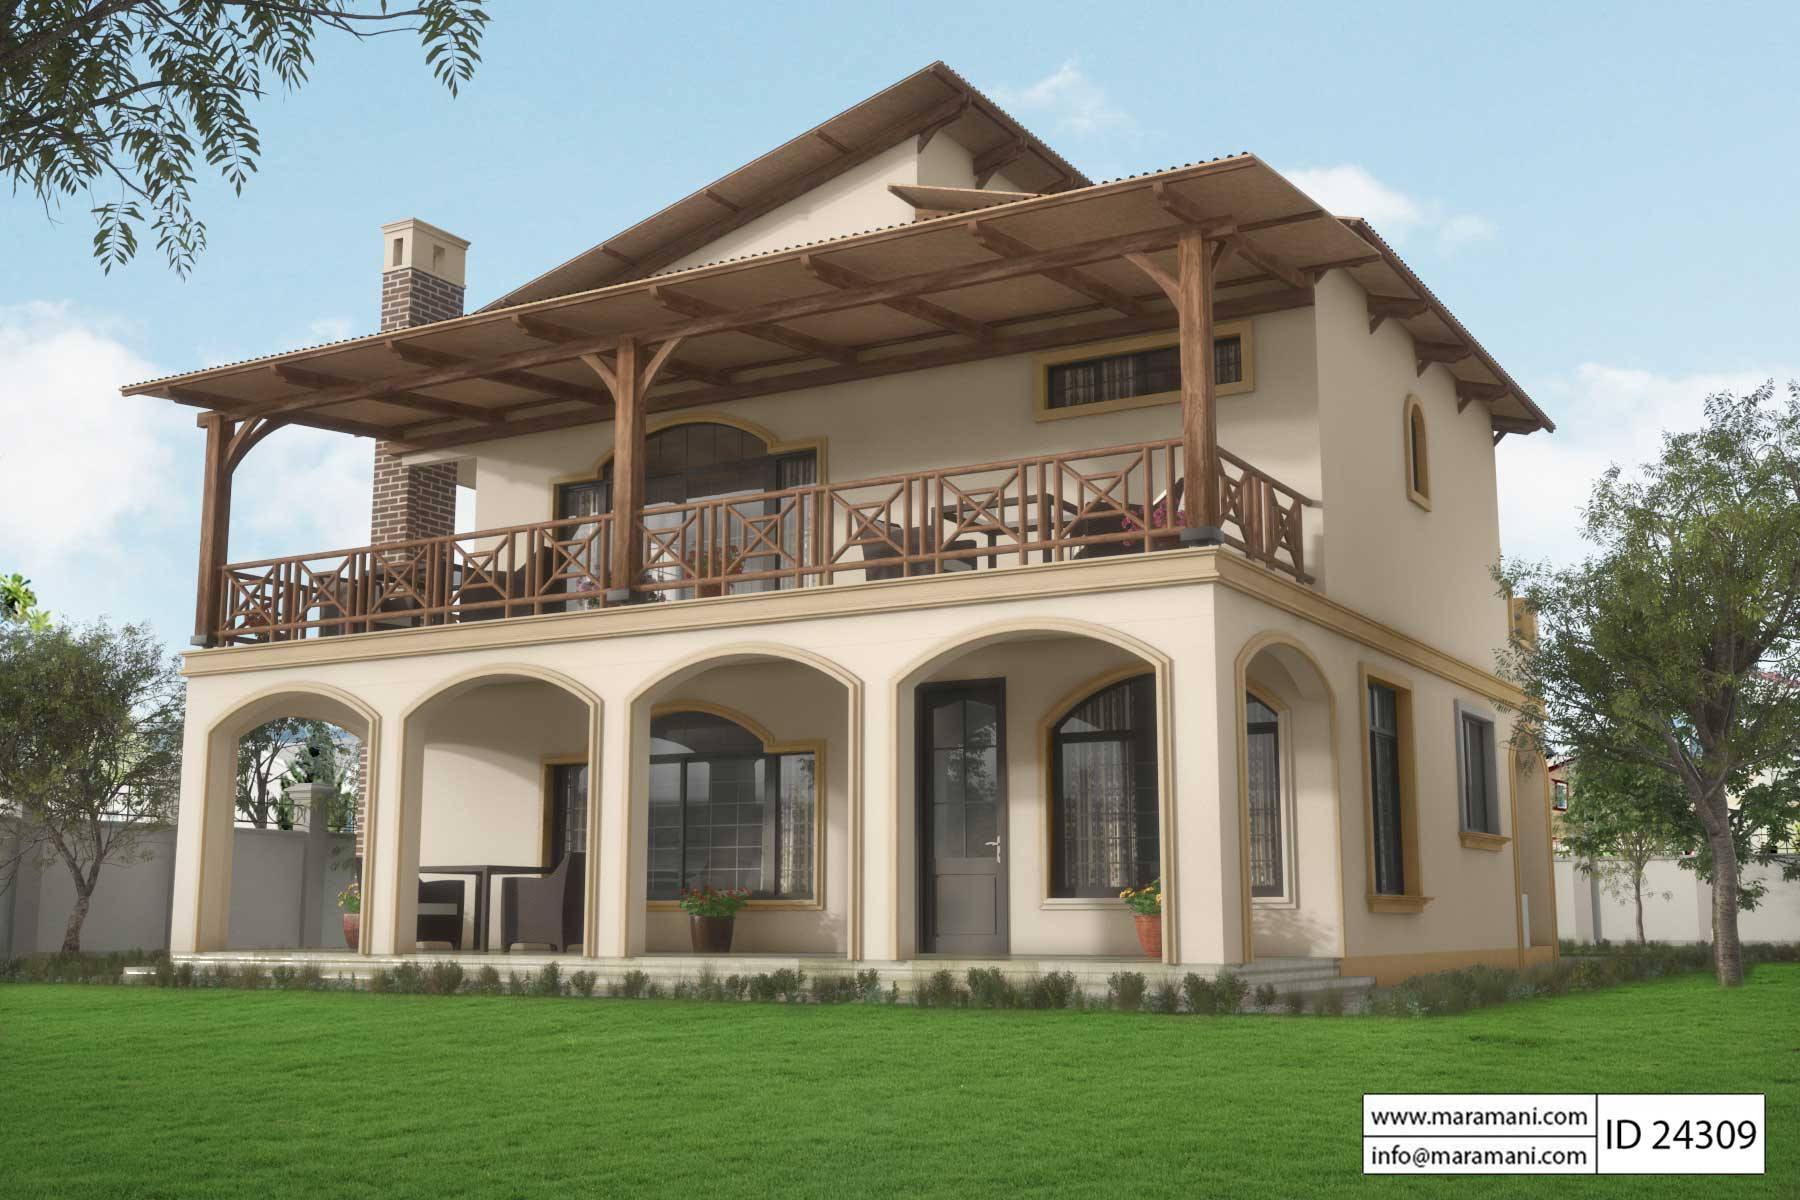 4 Bedroom House Plan. 4 Bedroom House Plan  ID 24309 Plans Designs for Africa by Maramani